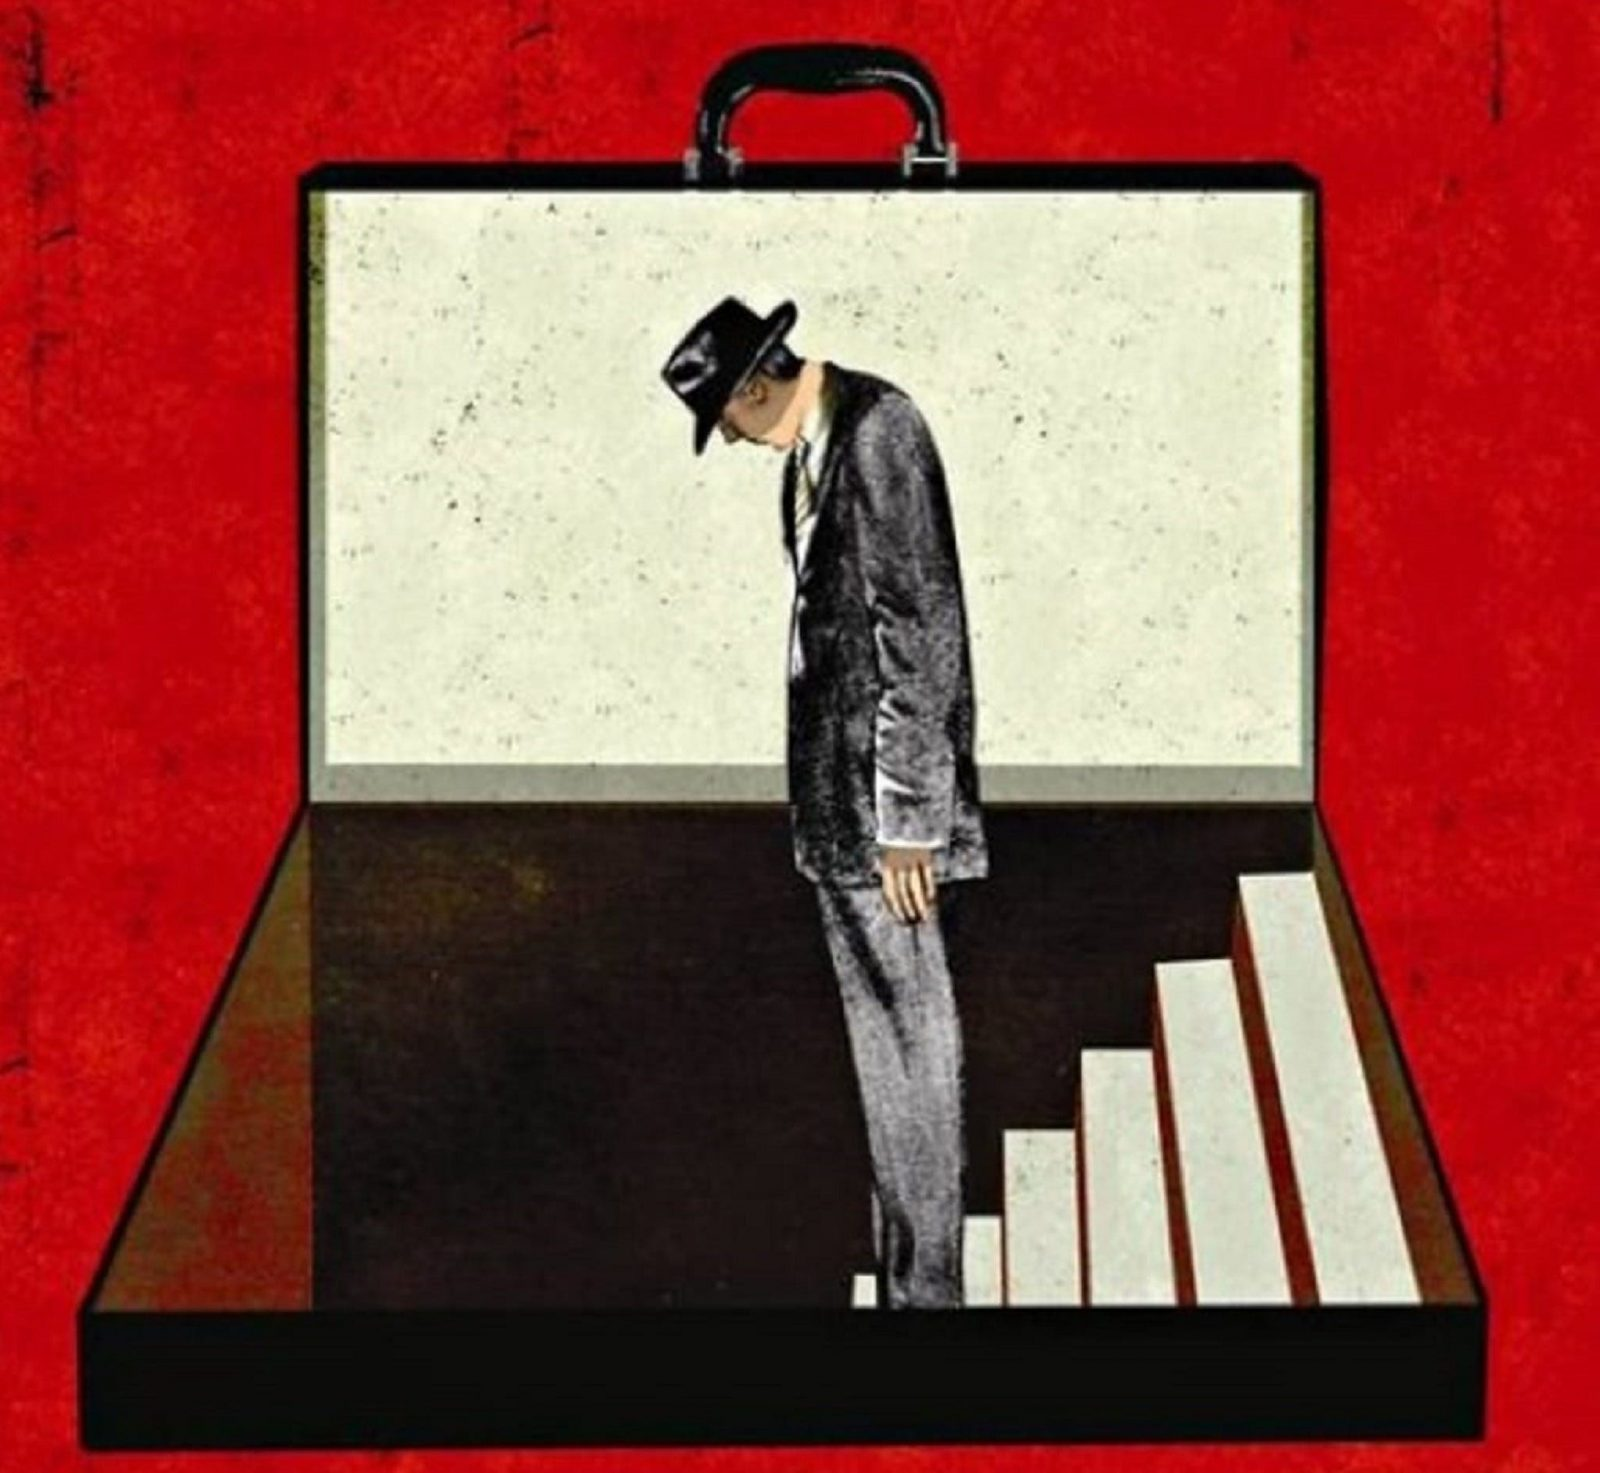 Death of a Salesman by Campbelltown Theatre Group